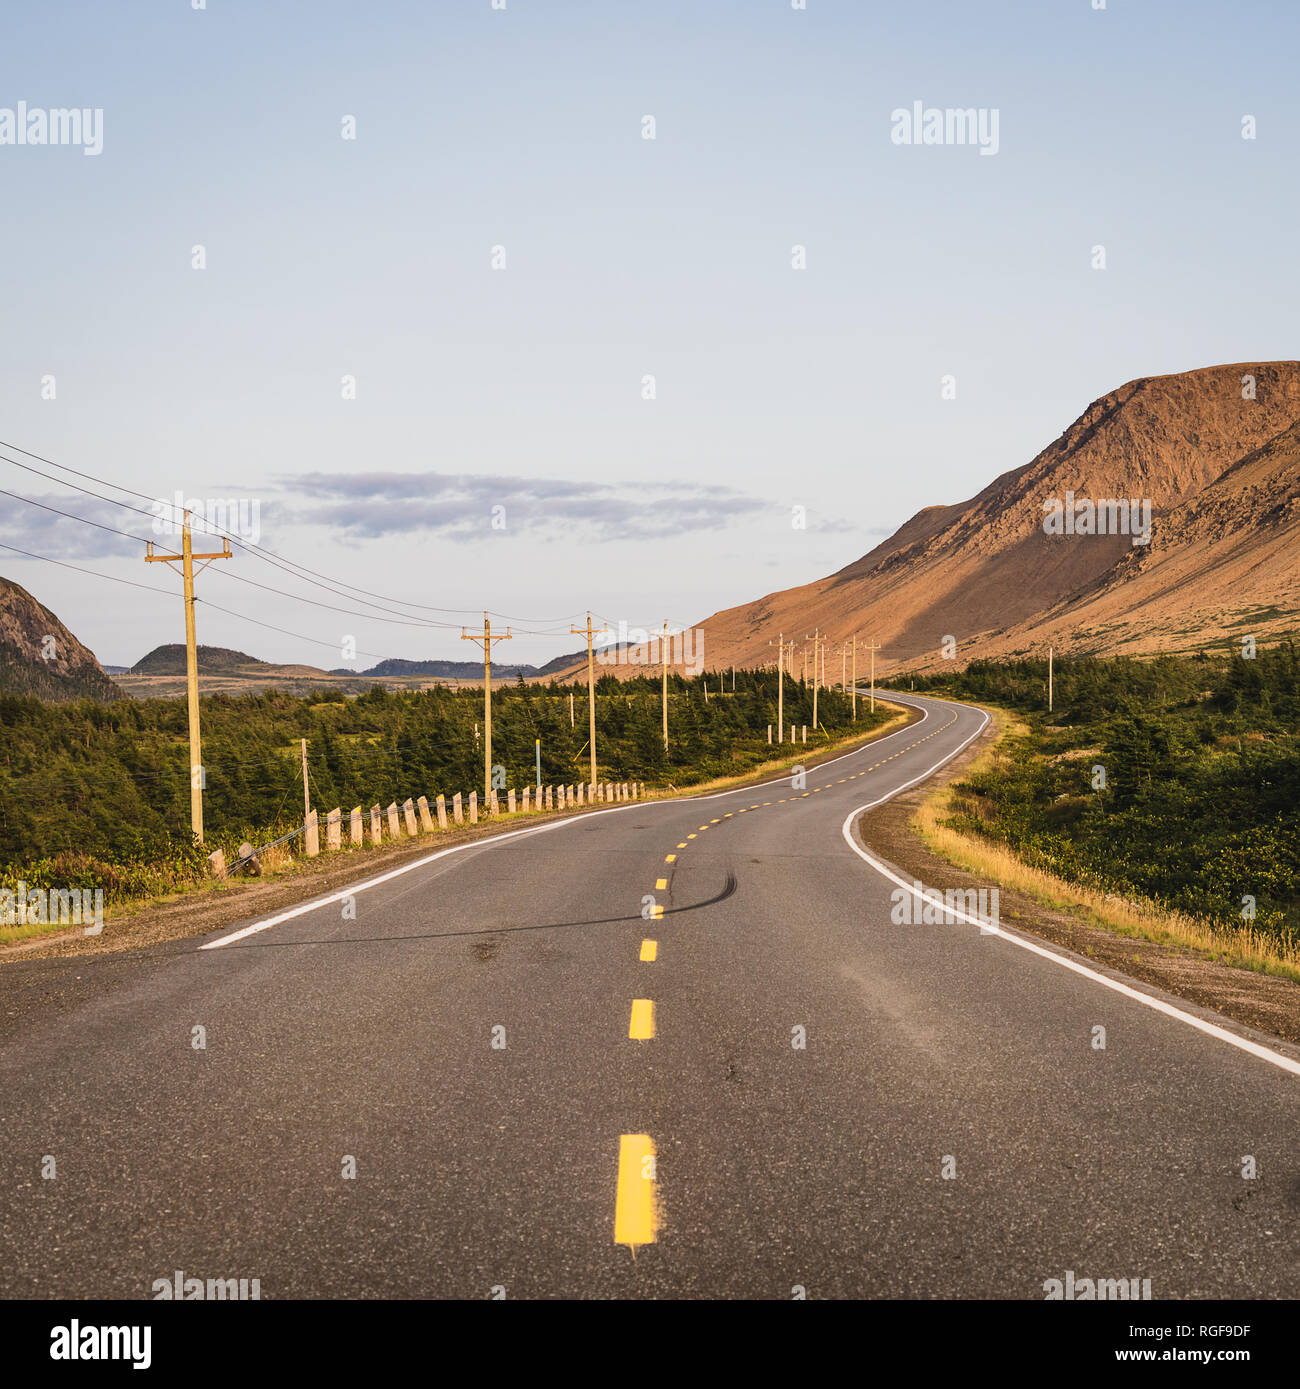 Twisting road running beside the Tablelands in the Gros Morne National Park in Newfoundland, Canada - Stock Image